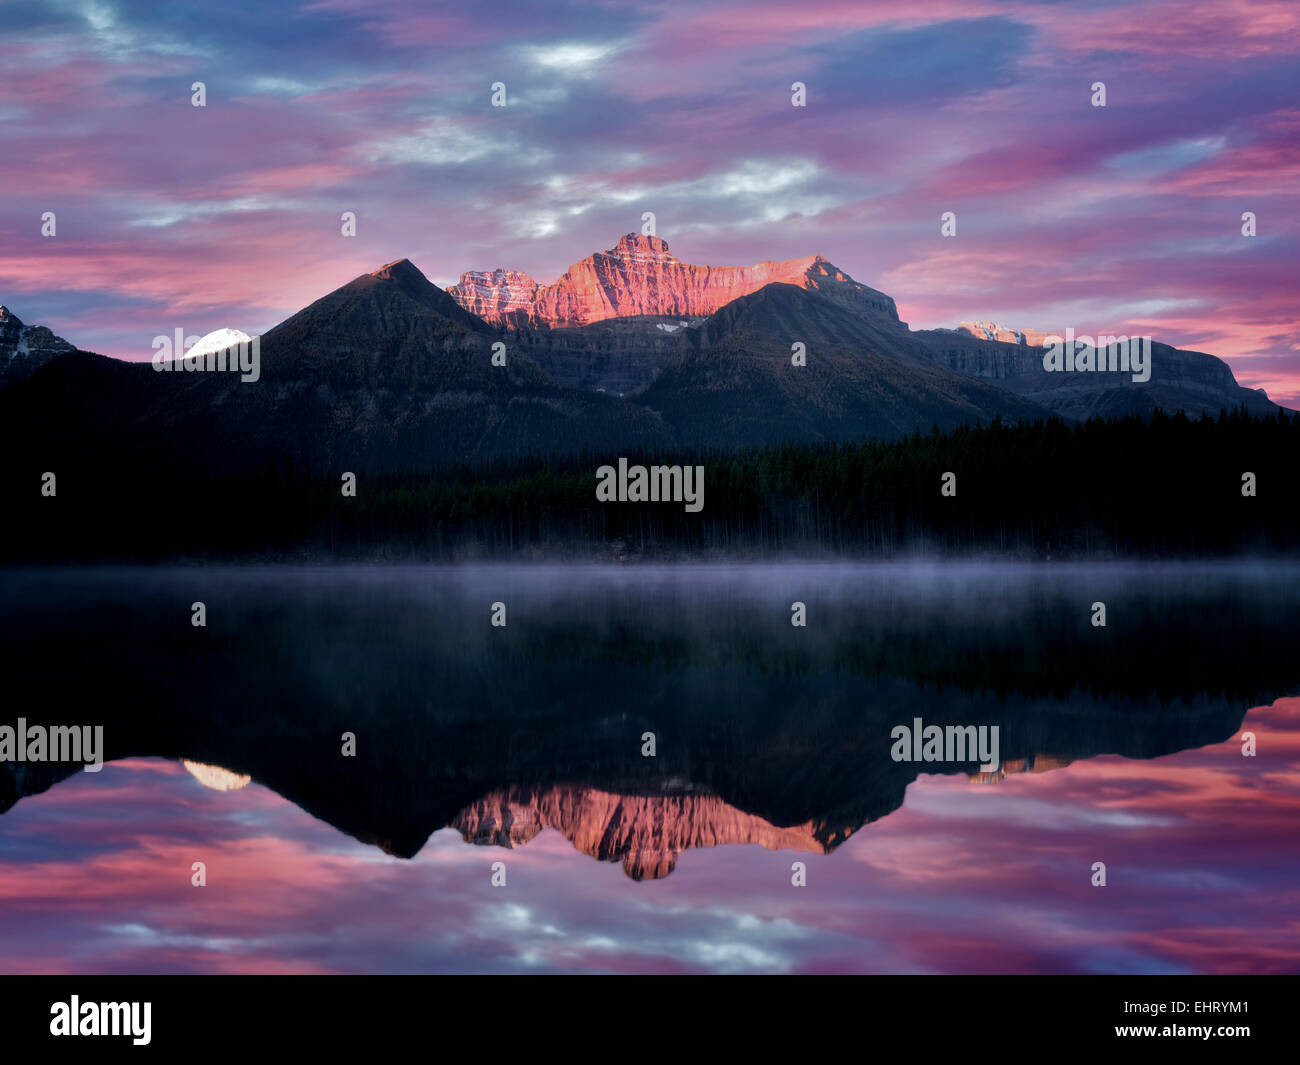 Herbert Lake with Mt. Temple reflection and sunrise. Banff National Park, Alberta, Canada - Stock Image